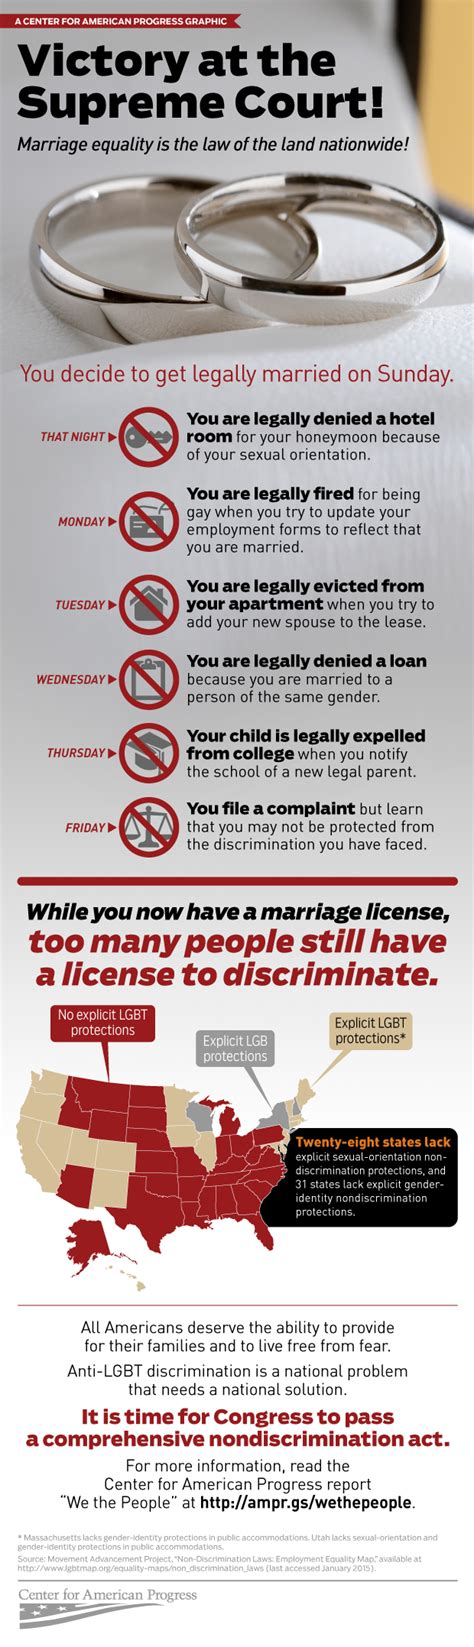 supreme court marriage ruling infographic the discrimination that remains beyond